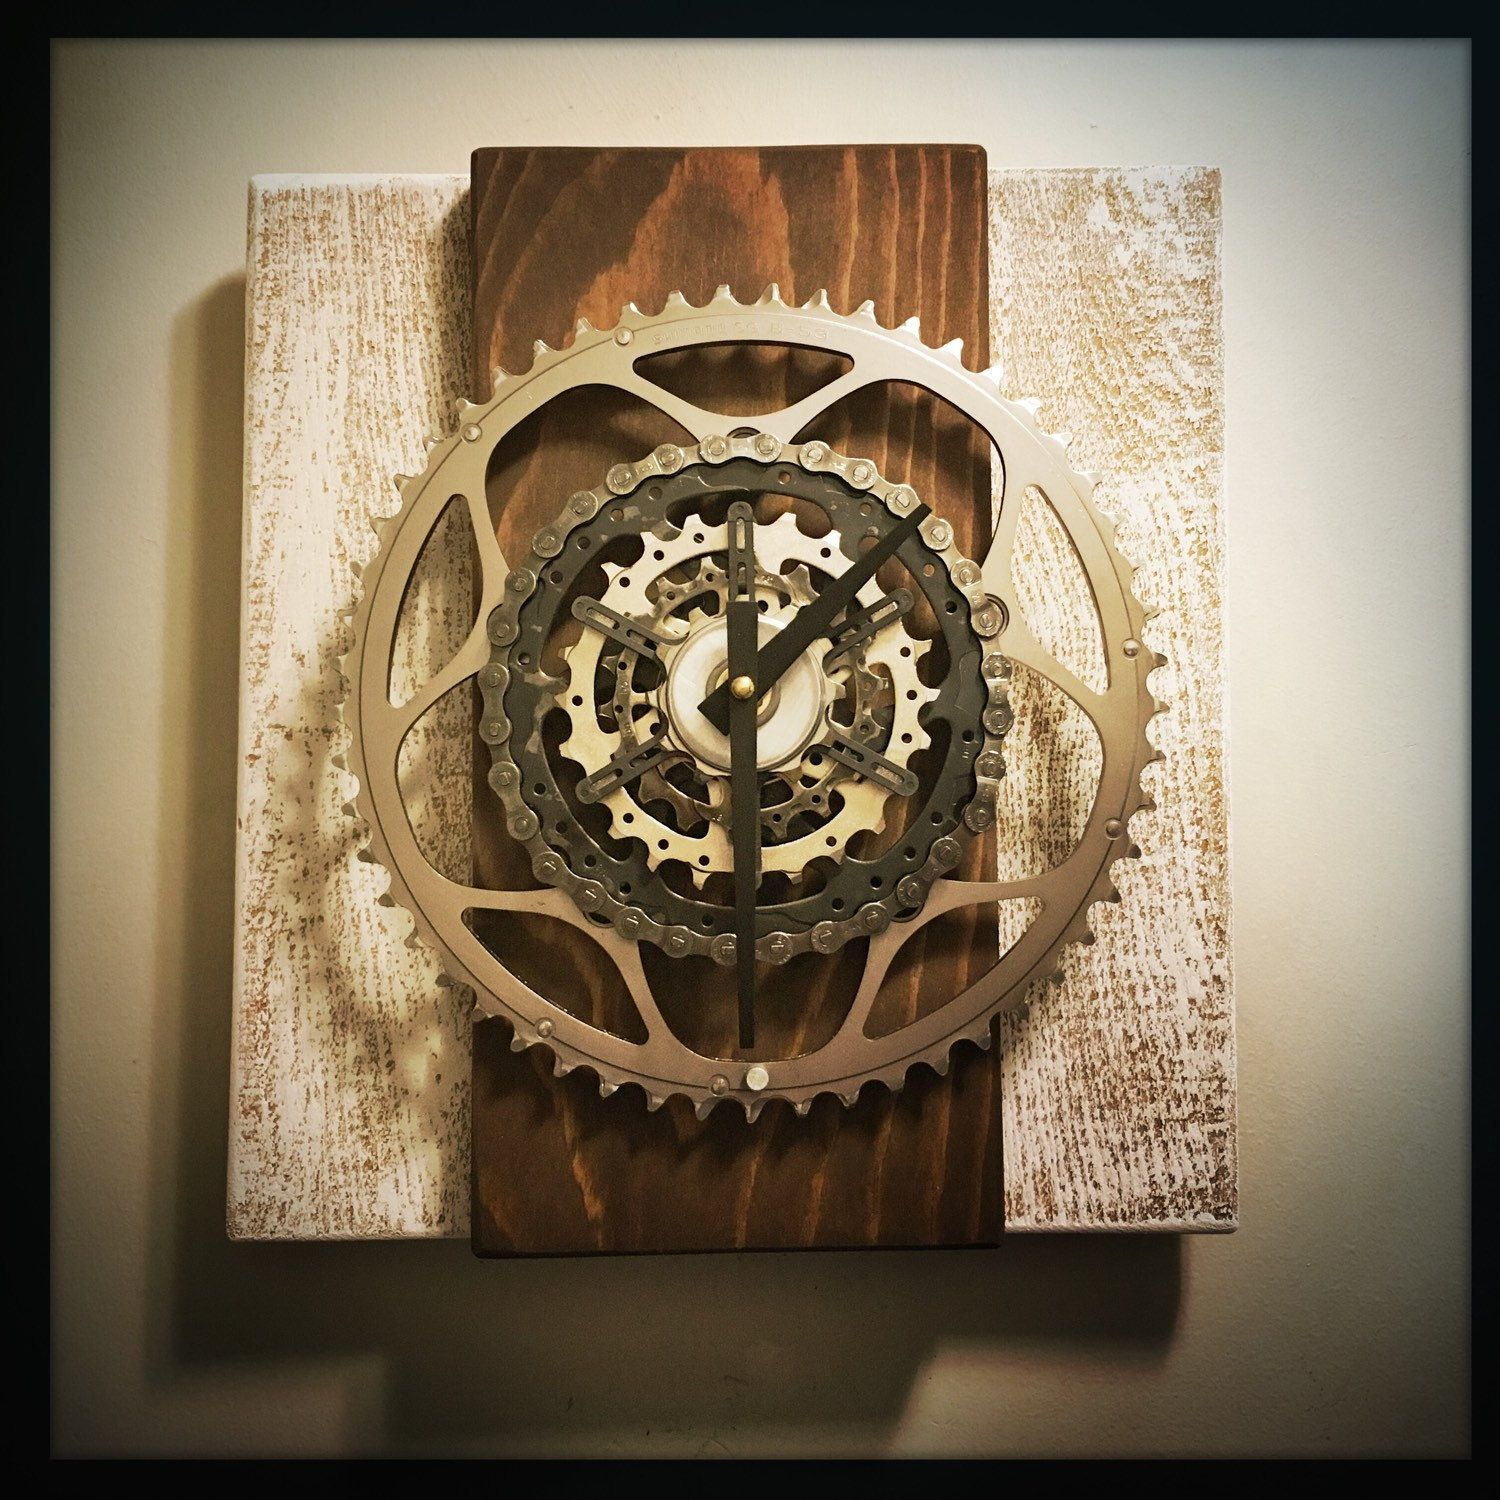 Bicycle rustic wall clock steampunk wall art unique wedding gift bicycle rustic wall clock steampunk wall art unique wedding gift for men boho housewarming gift for men anniversary gift for guys amipublicfo Images